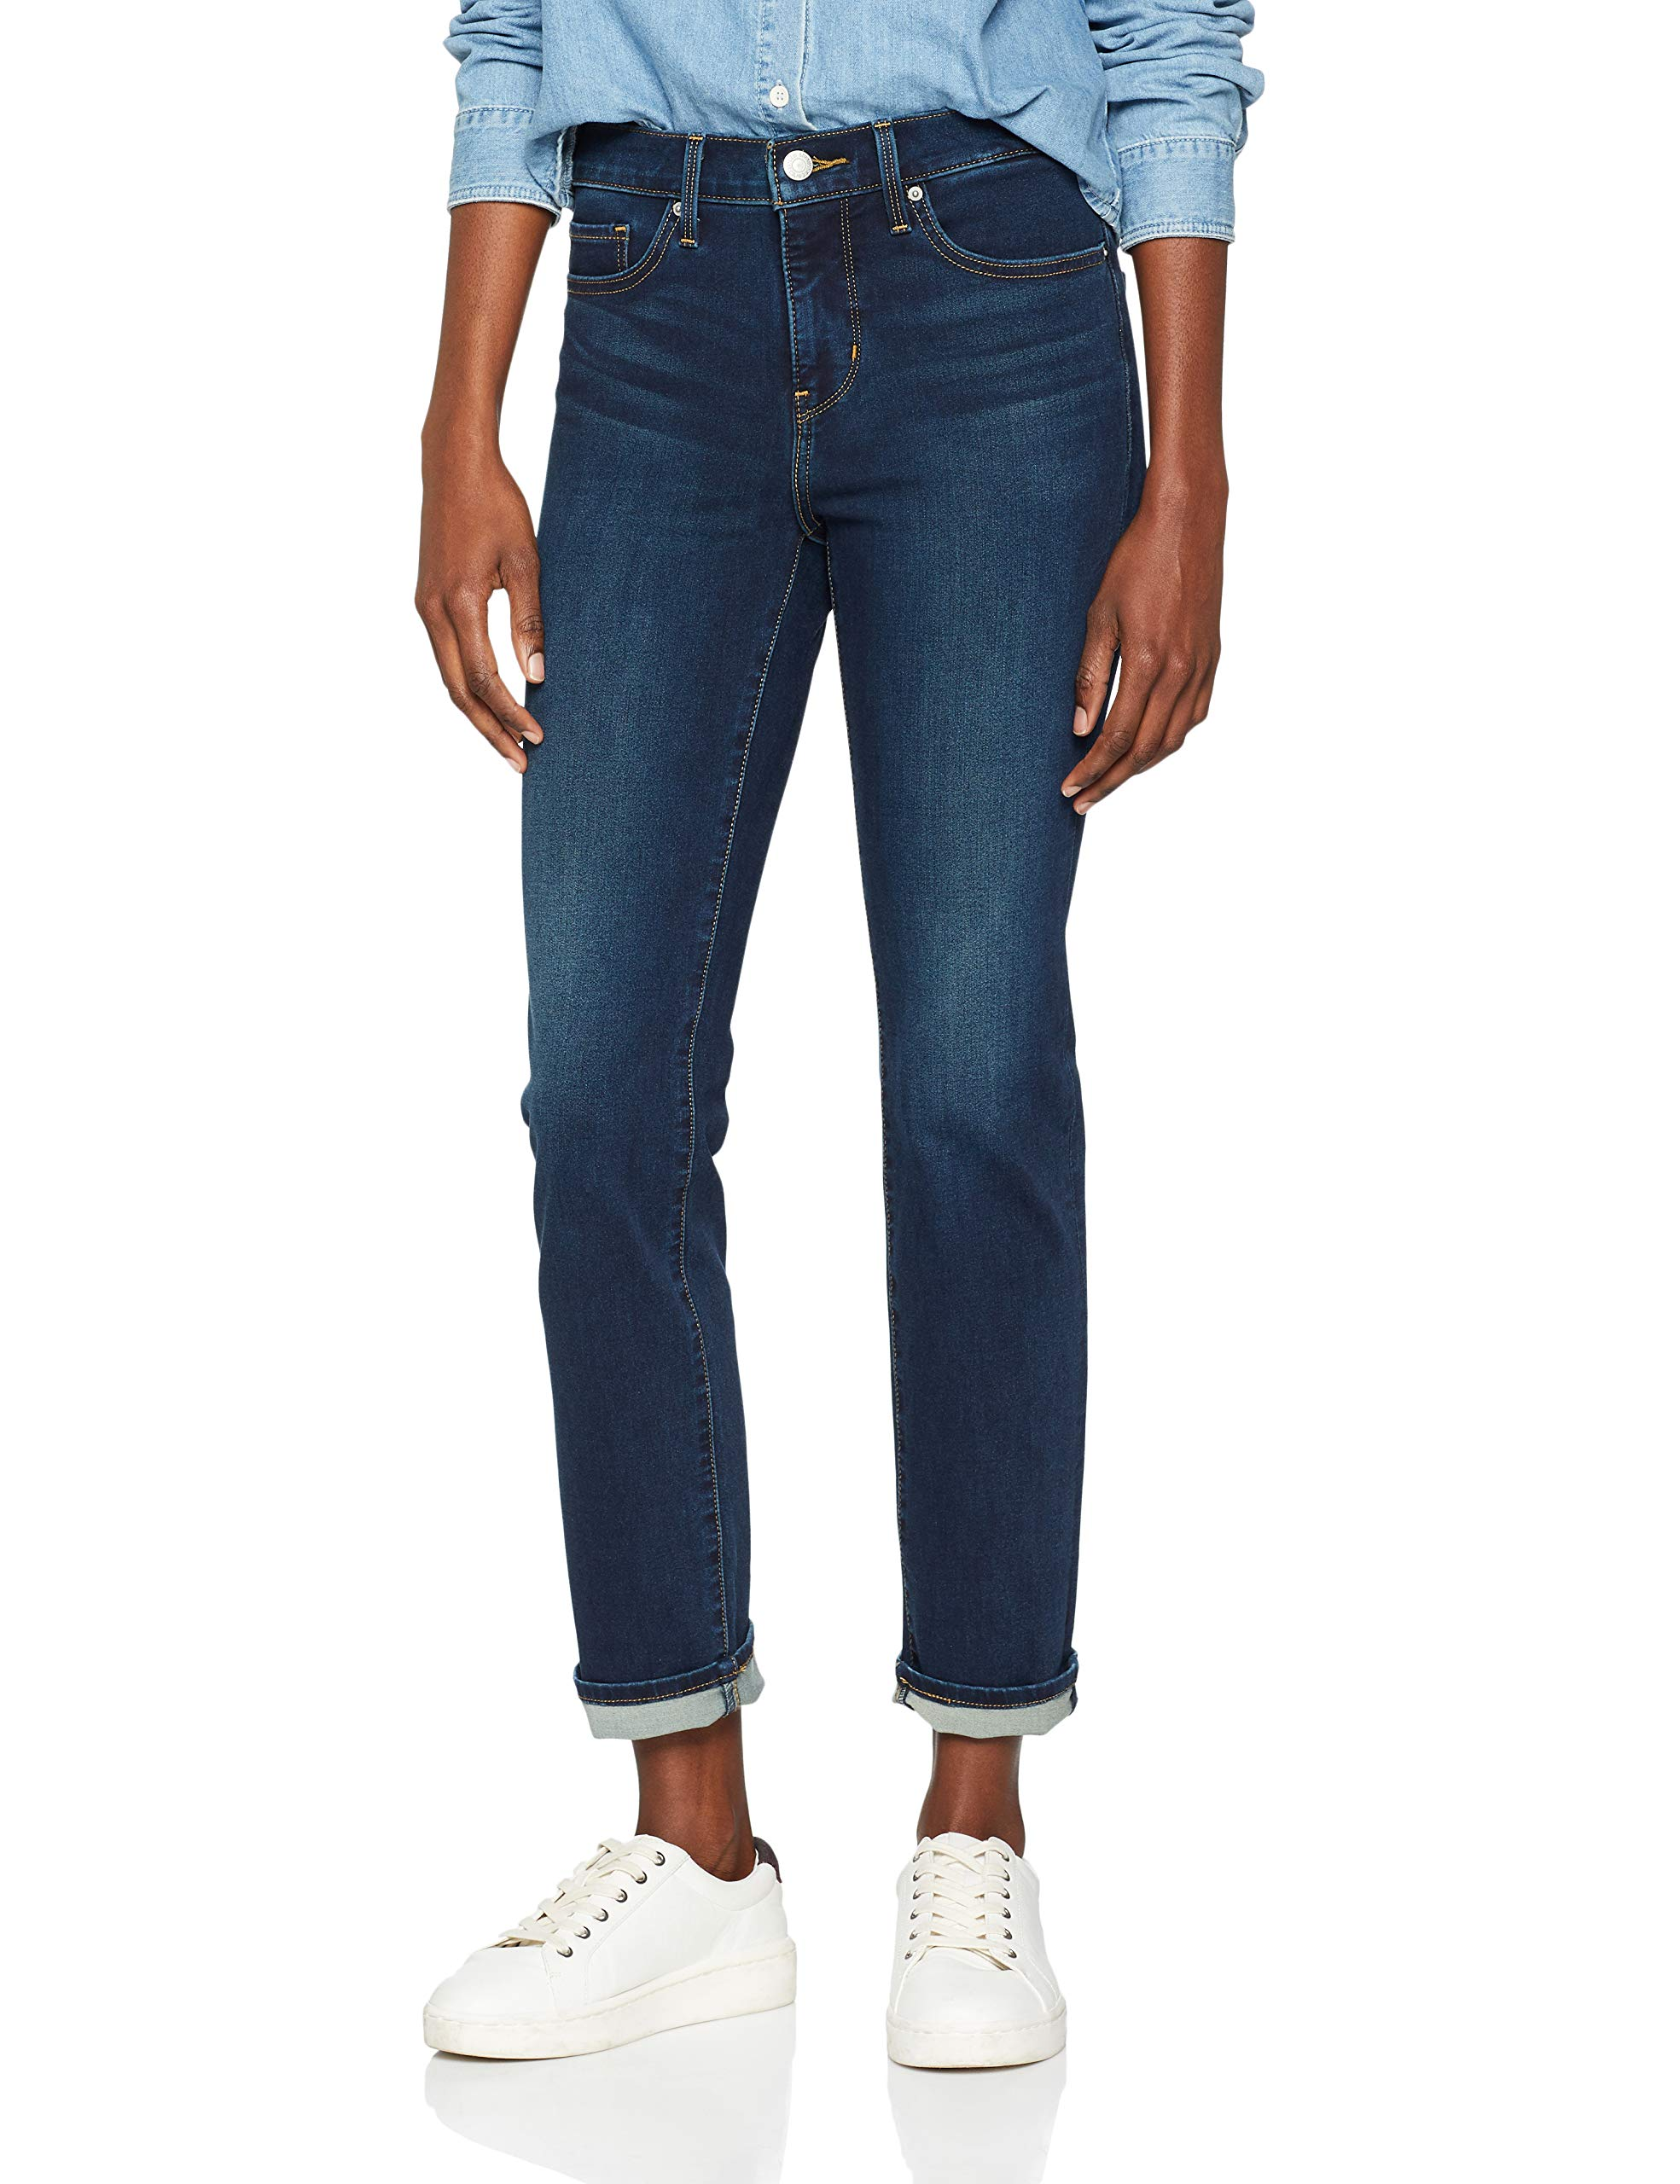 Destiny 32Femme JeanBleudate 0091W29 Slim 312 l32taille Shaping Fabricant29 Levi's With 2IEDH9W